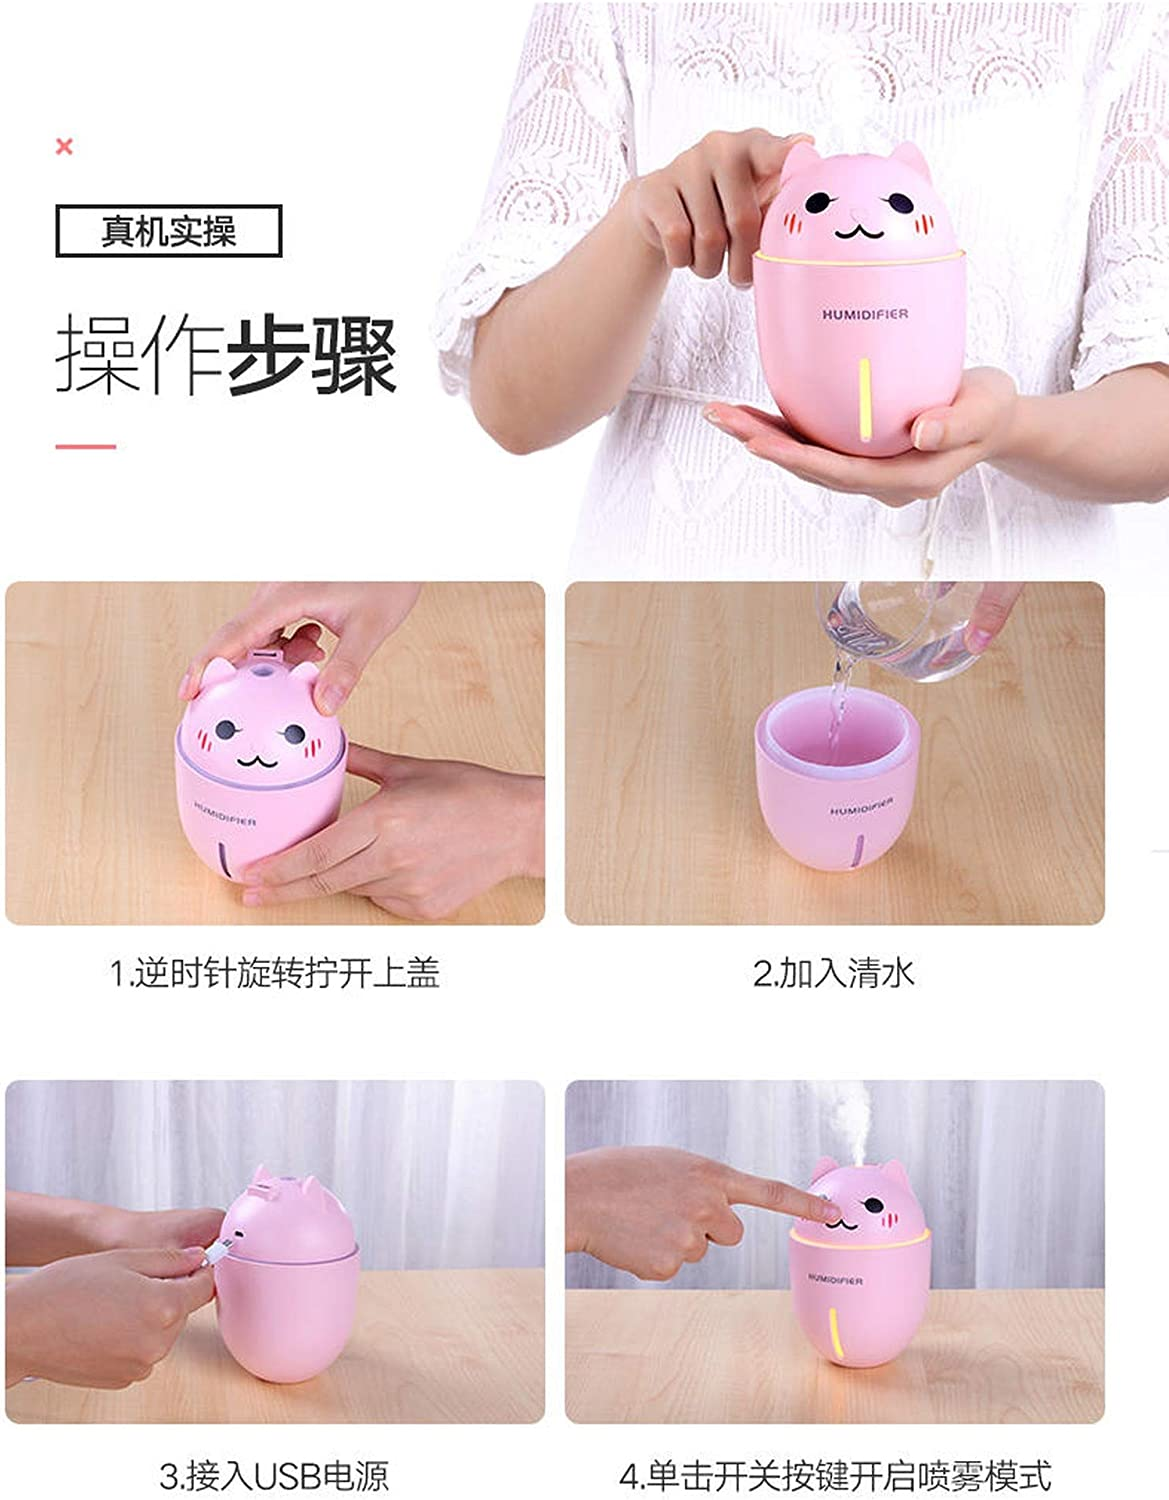 USB Spray Humidifier Small Air Conditioner Student Dorm Room Handheld Office Portable Mute Household Three-in-One,Pink,Cn